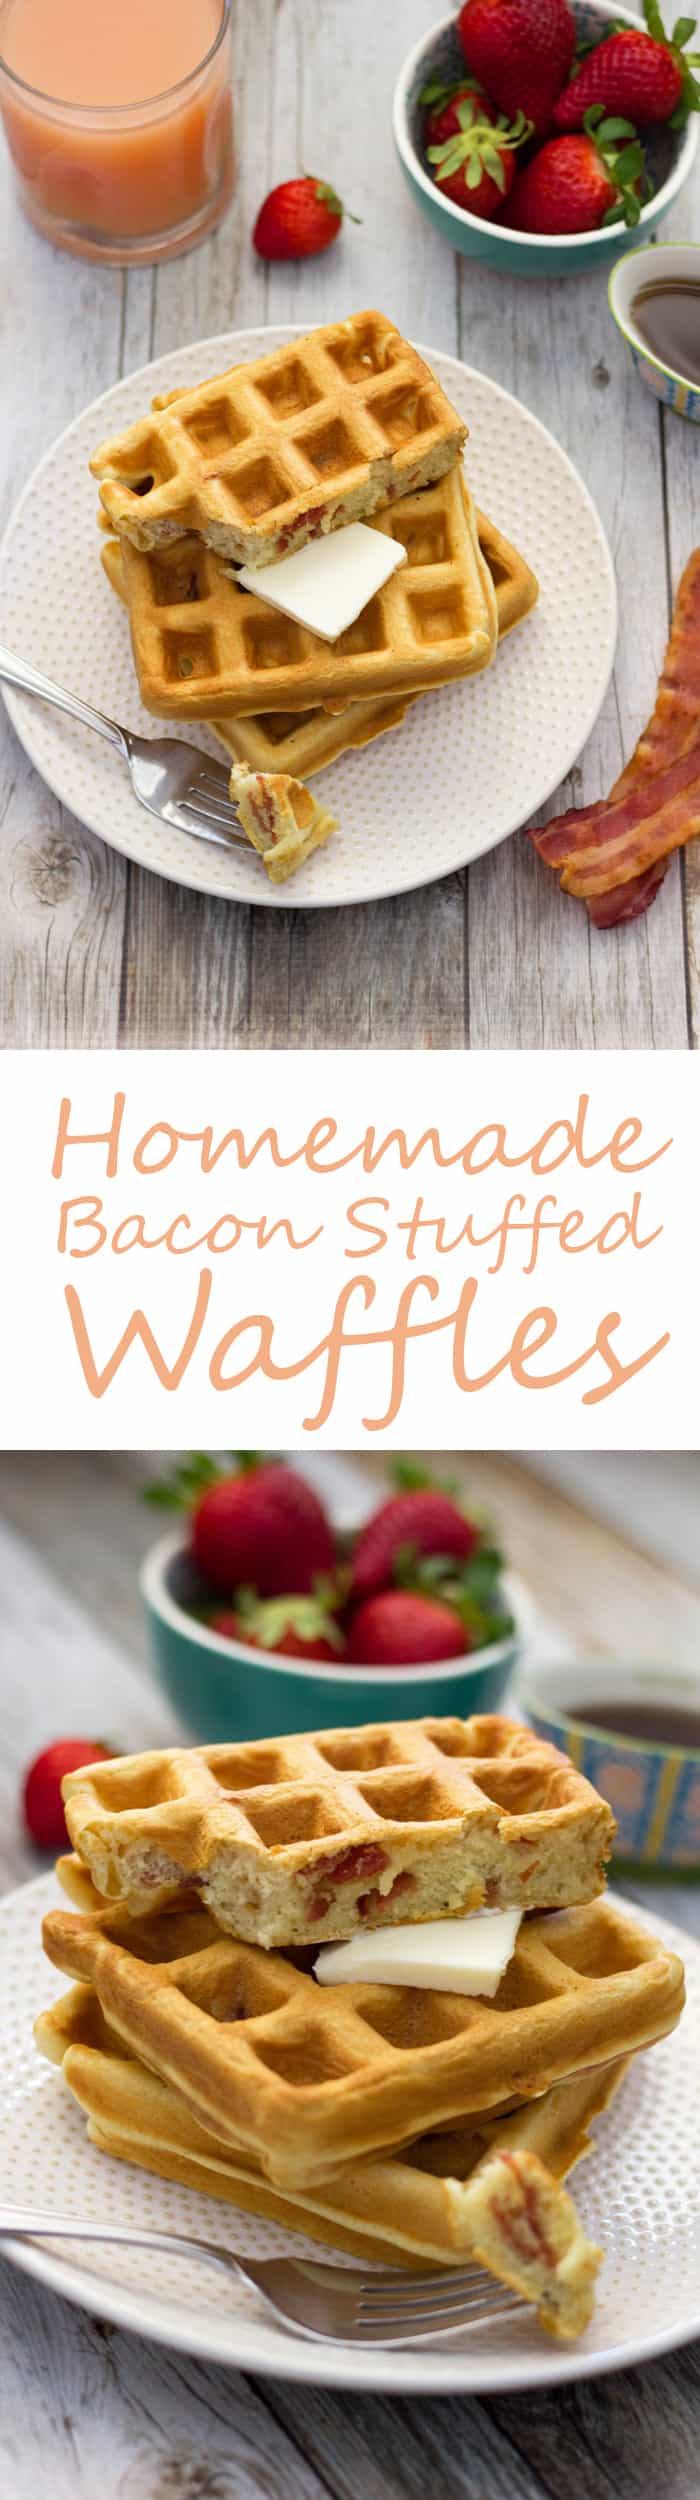 These homemade bacon waffles are fluffy, buttery and oh so delicous